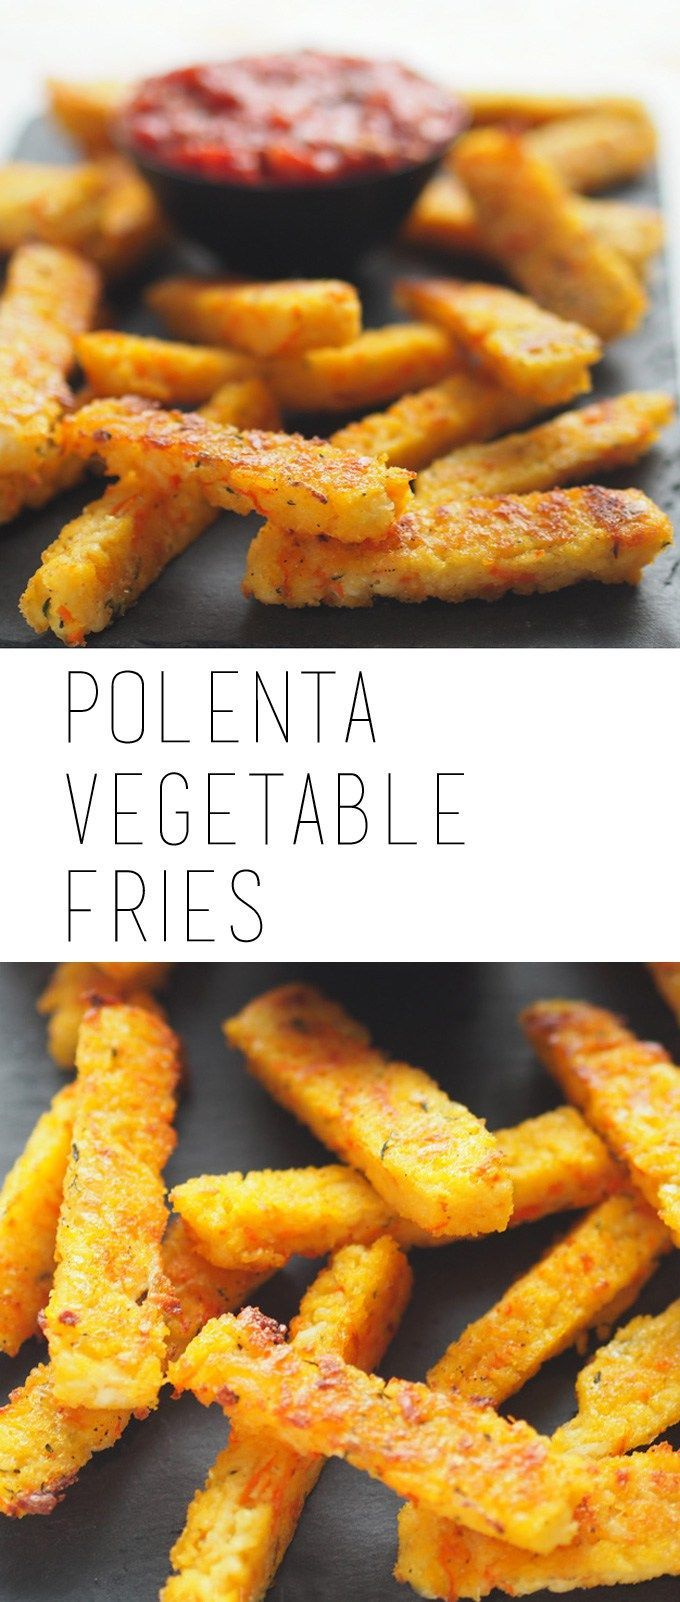 Baked polenta vegetable fries - serve with a classic marinara sauce as a family friendly snack or side dish